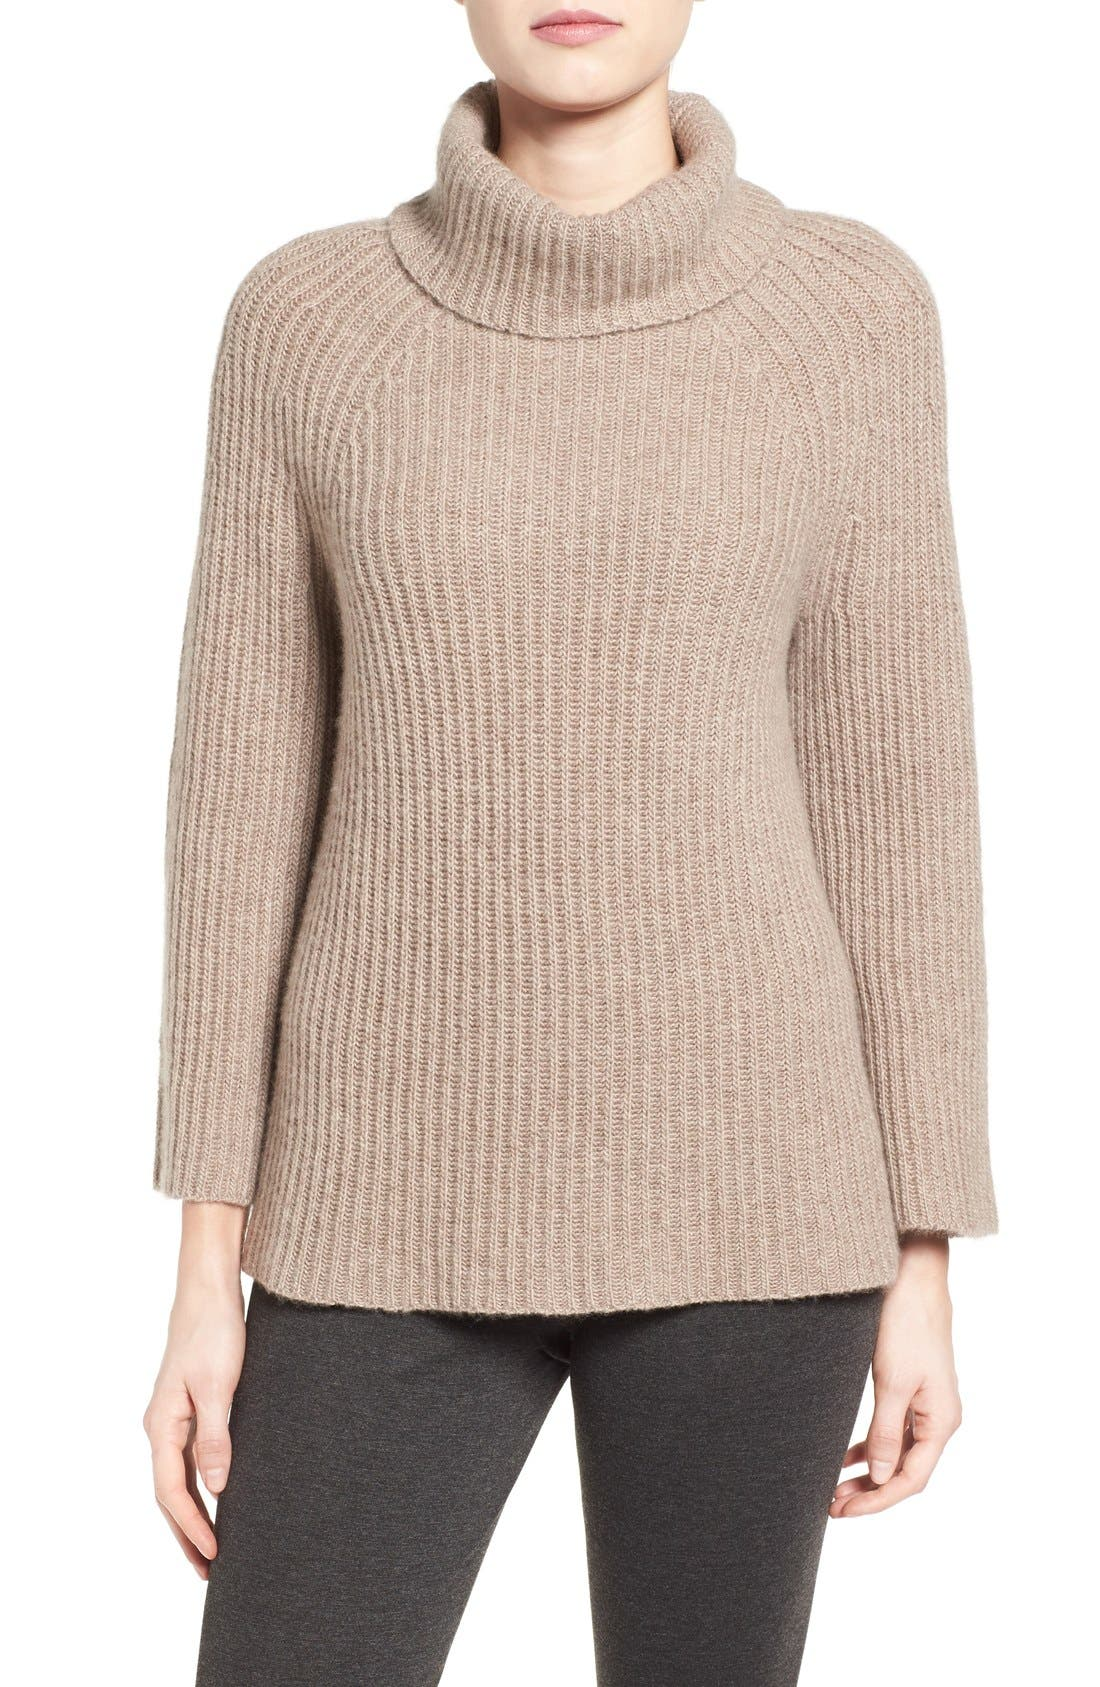 Alternate Image 1 Selected - Halogen® Ribbed Cashmere Turtleneck Sweater (Regular & Petite)